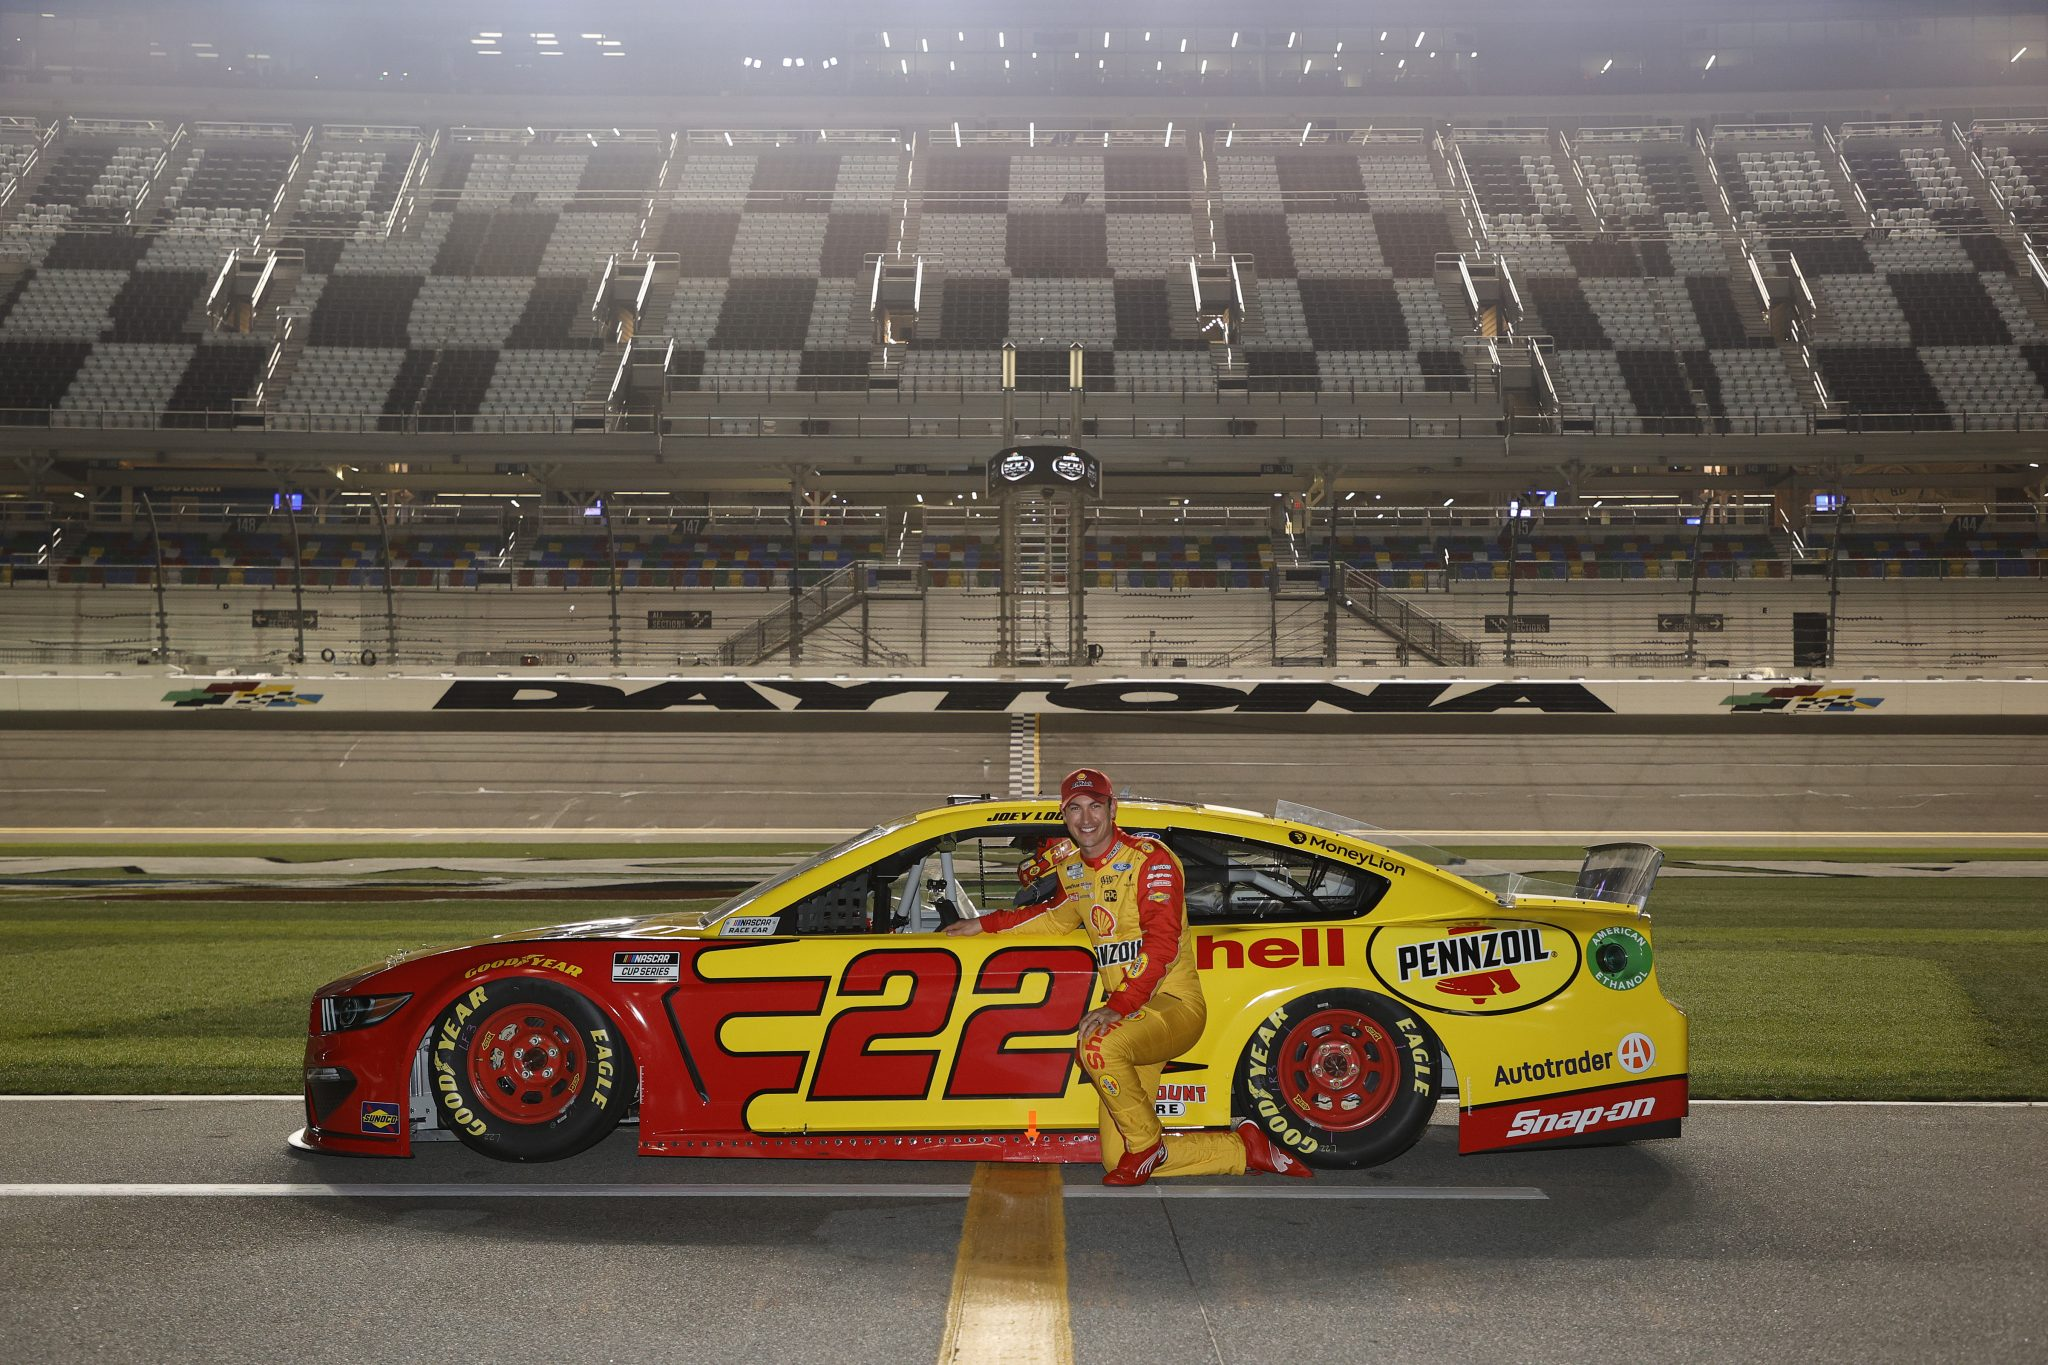 DAYTONA BEACH, FLORIDA - FEBRUARY 10: Joey Logano, driver of the #22 Shell Pennzoil Ford, poses for photos during qualifying for the NASCAR Cup Series 63rd Annual Daytona 500 at Daytona International Speedway on February 10, 2021 in Daytona Beach, Florida. (Photo by Jared C. Tilton/Getty Images) | Getty Images